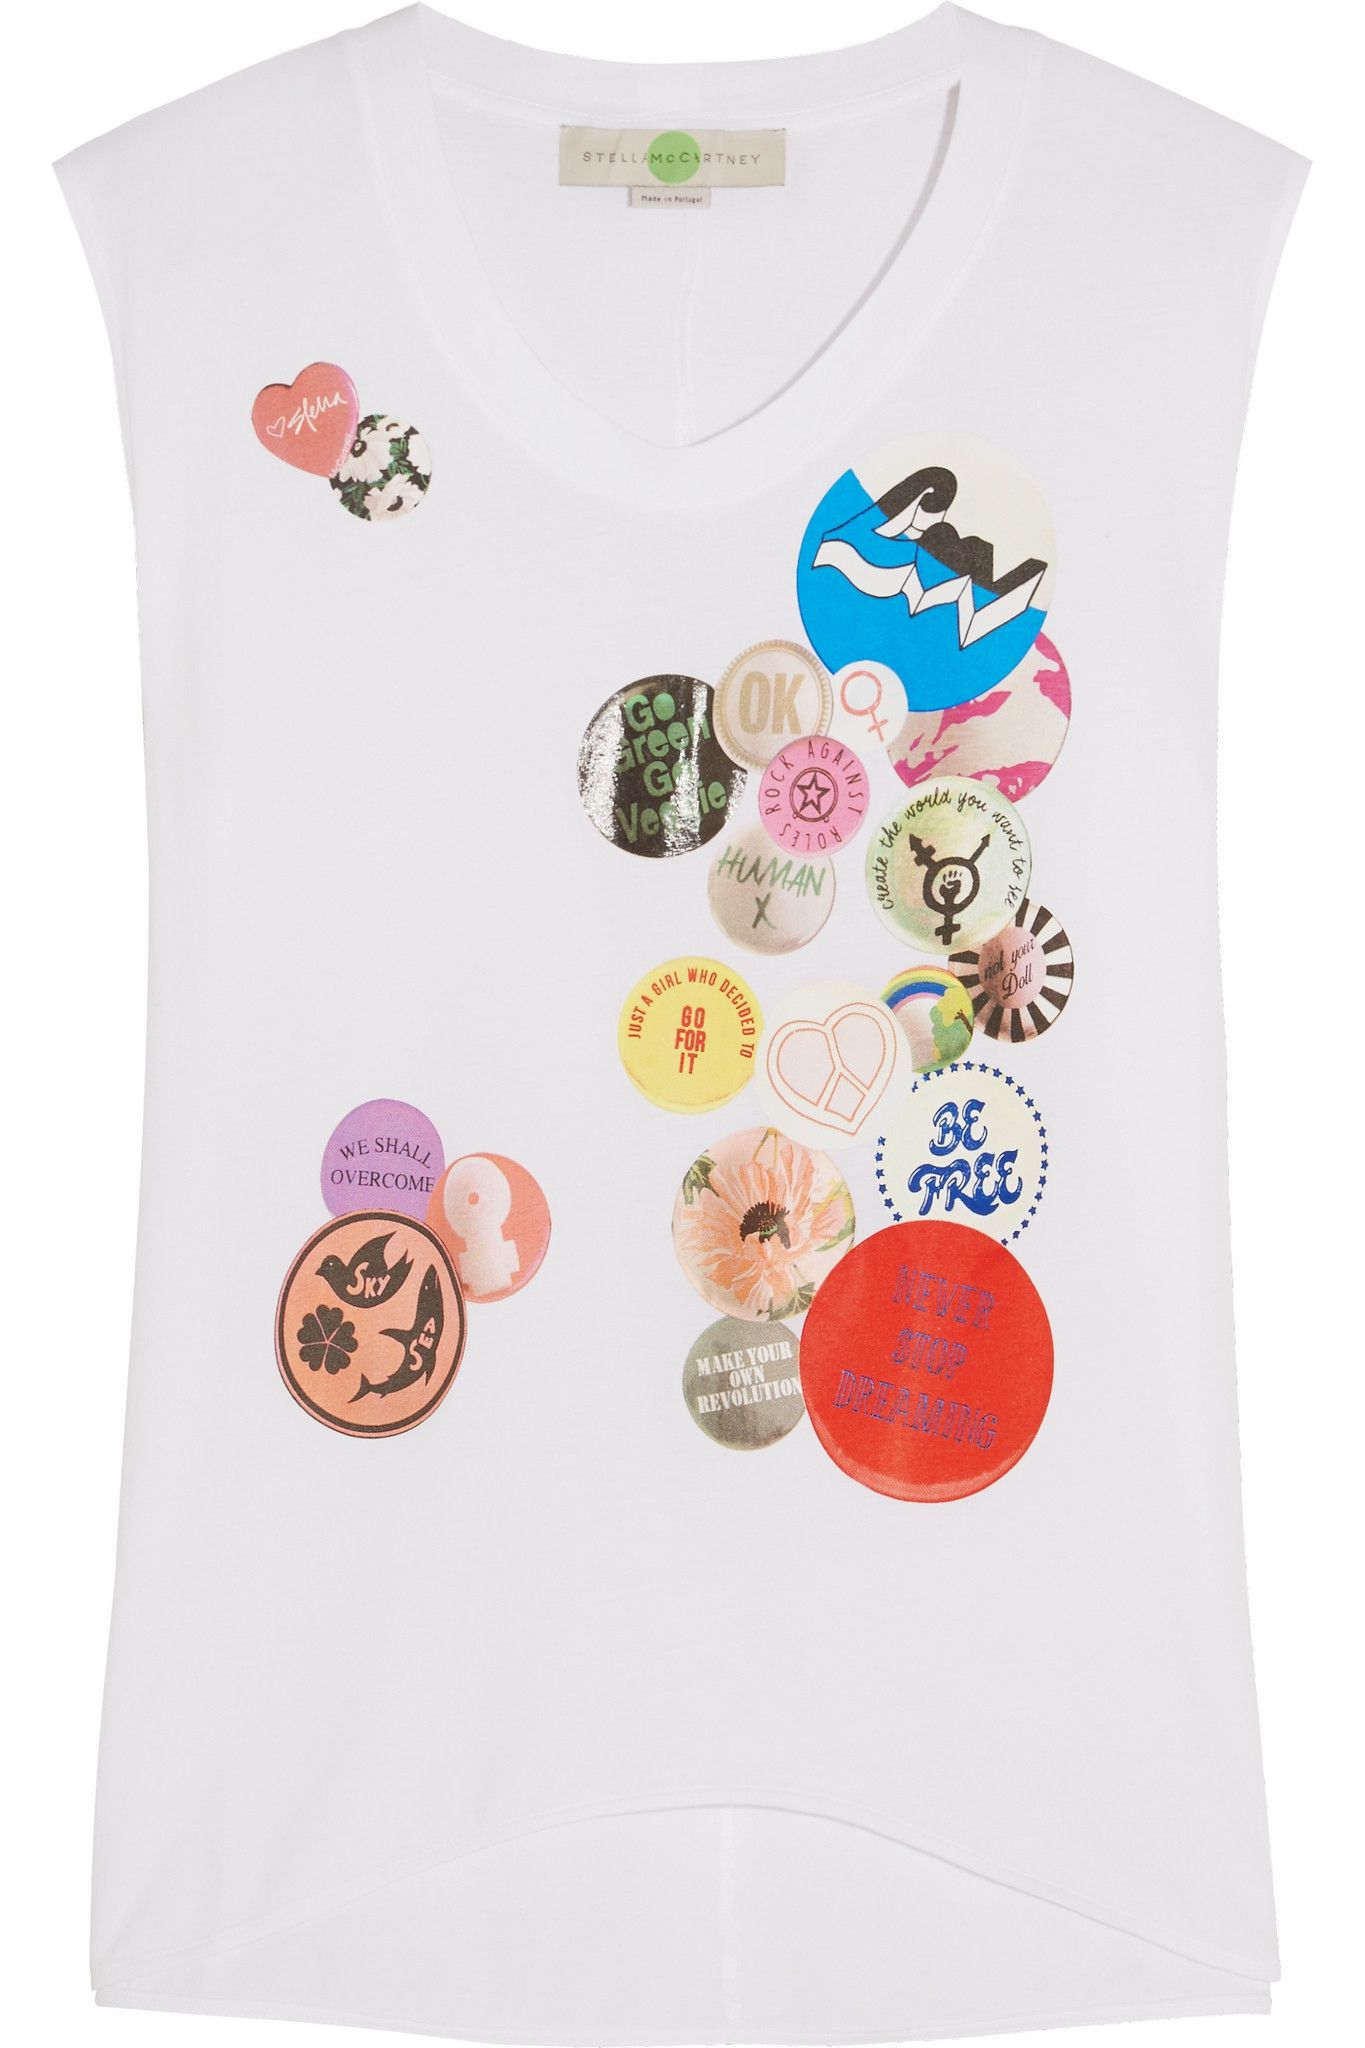 STELLA MCCARTNEY Oversized printed cotton-jersey T-shirt  $265.00 https://www.net-a-porter.com/products/645571